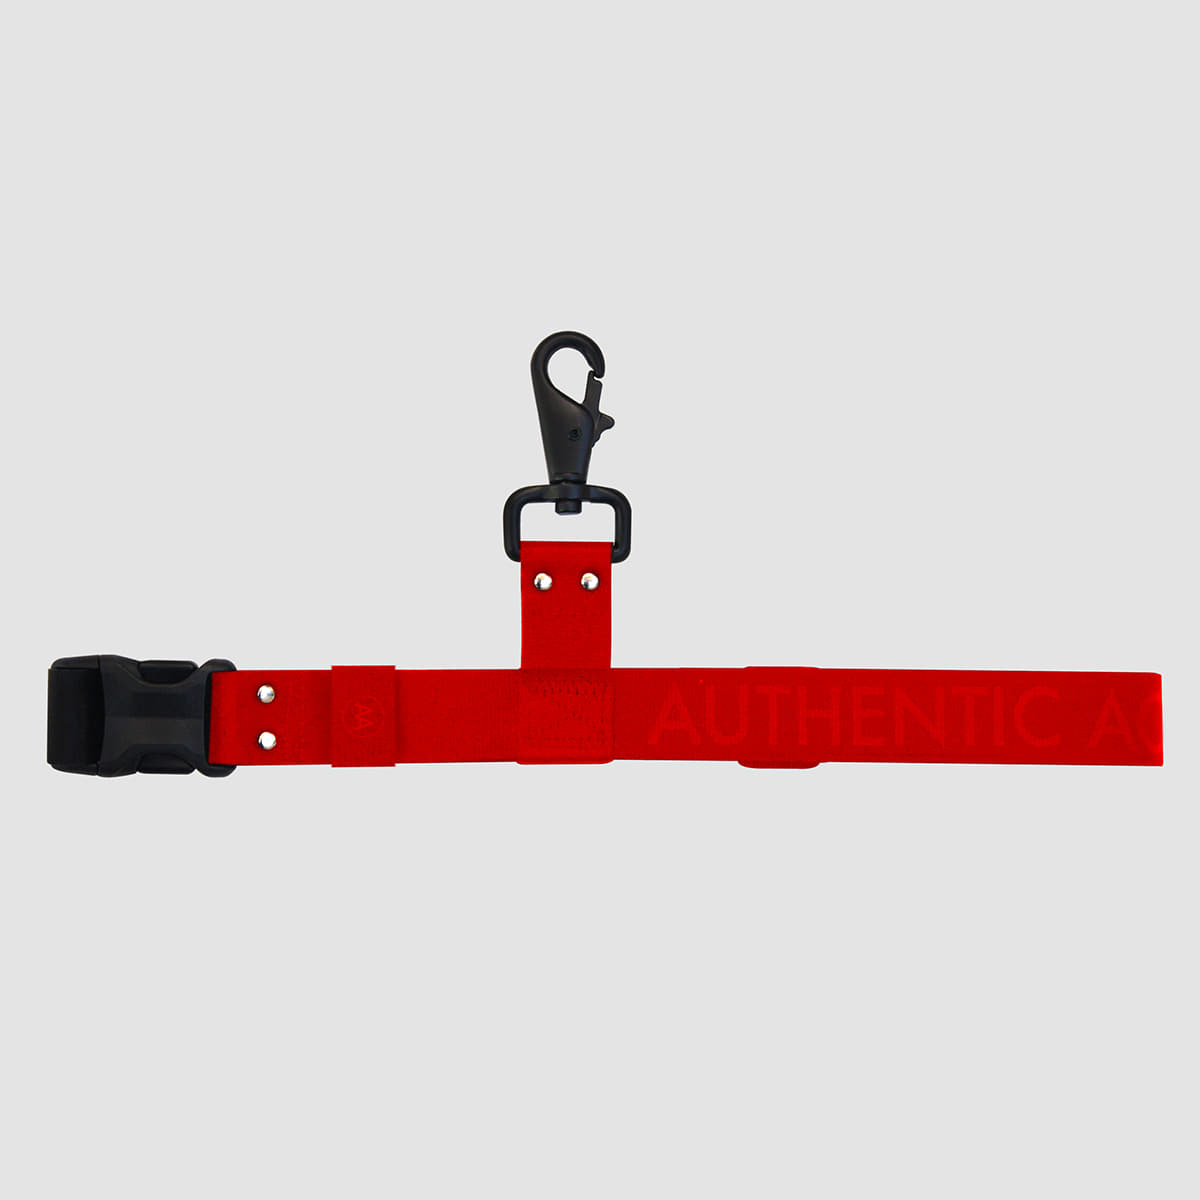 AA19 S/S MILI-TECH SUPER LOCK-BELT RED